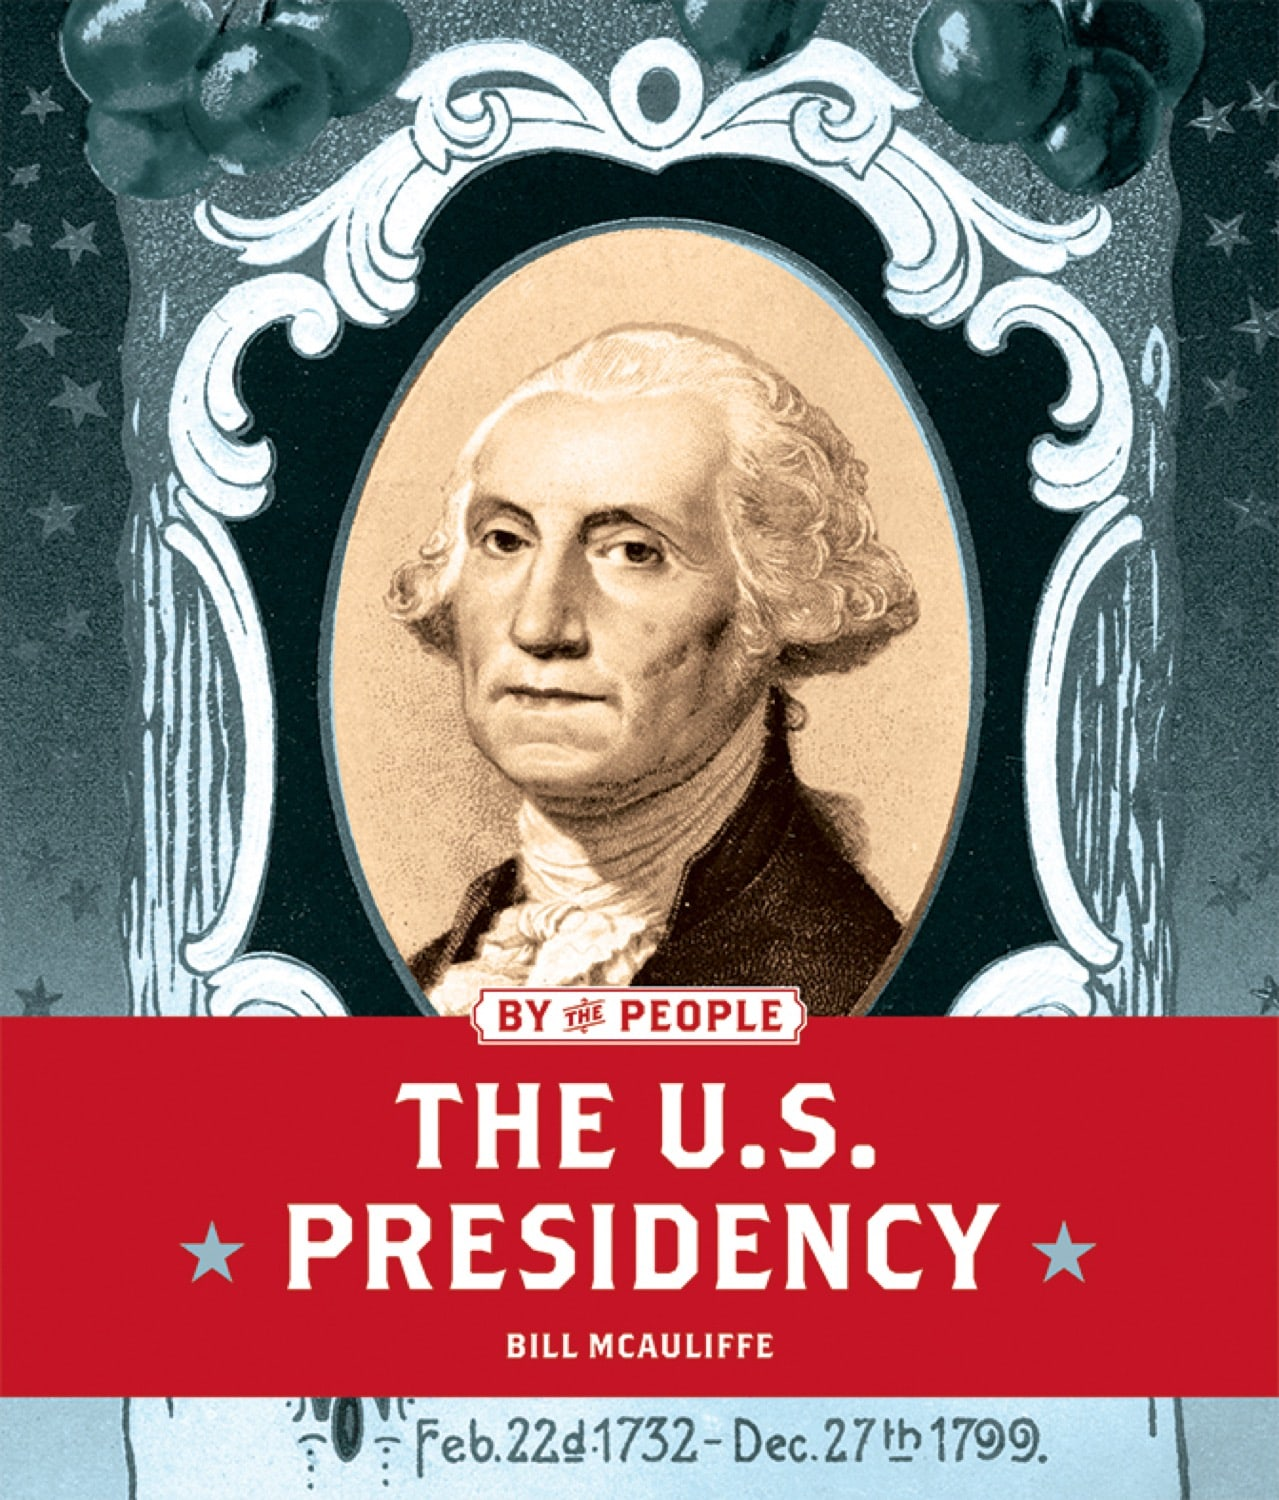 By the People: U.S. Presidency, The